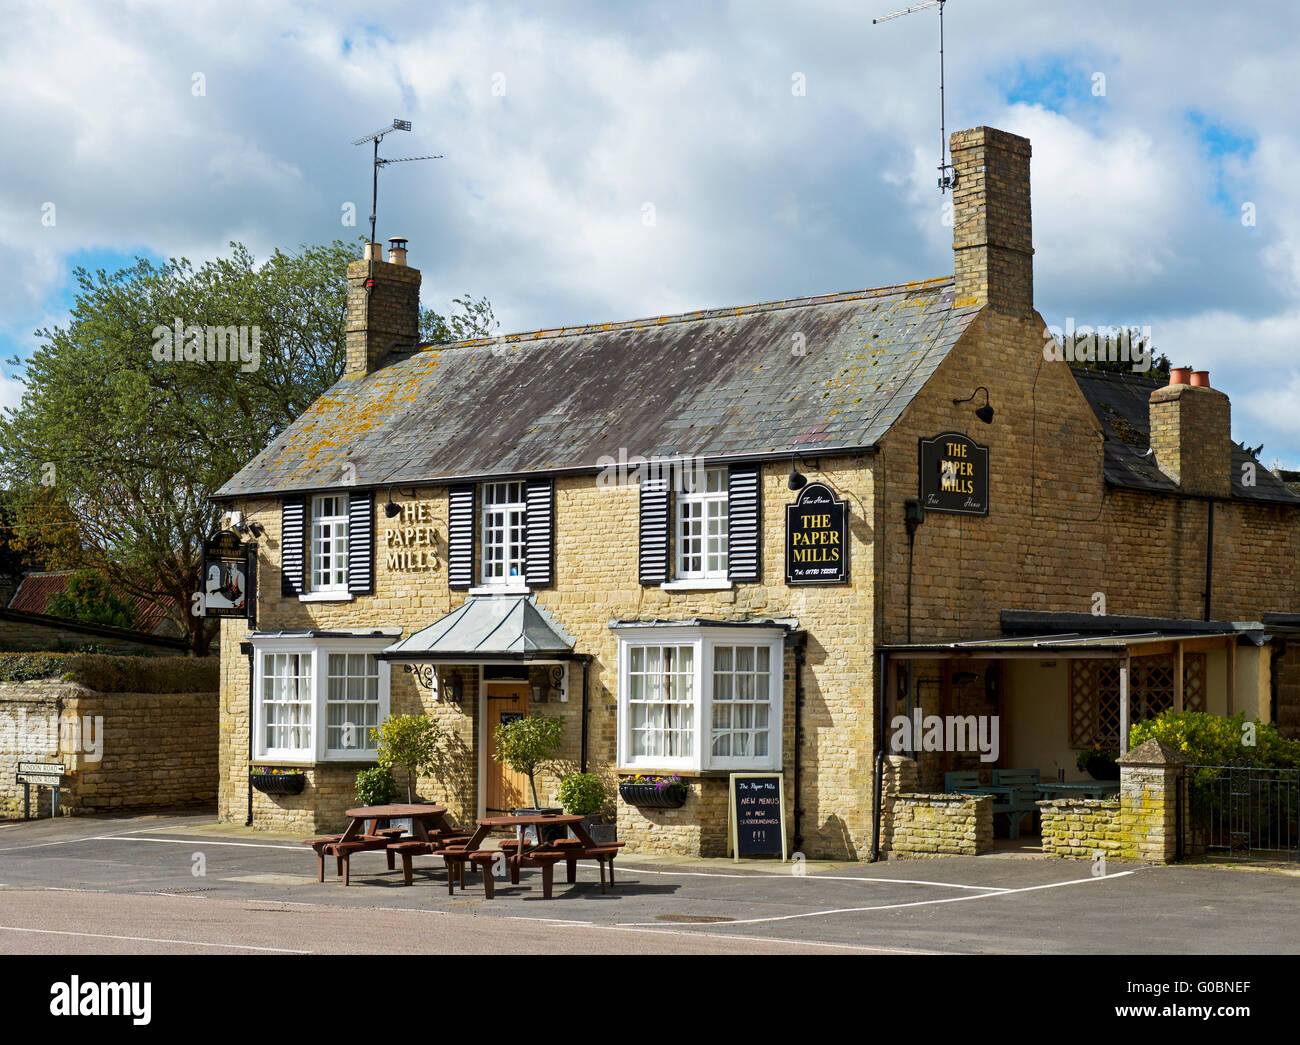 The Paper Mills pub in the village of Wansford, Cambridgeshire, England UK - Stock Image